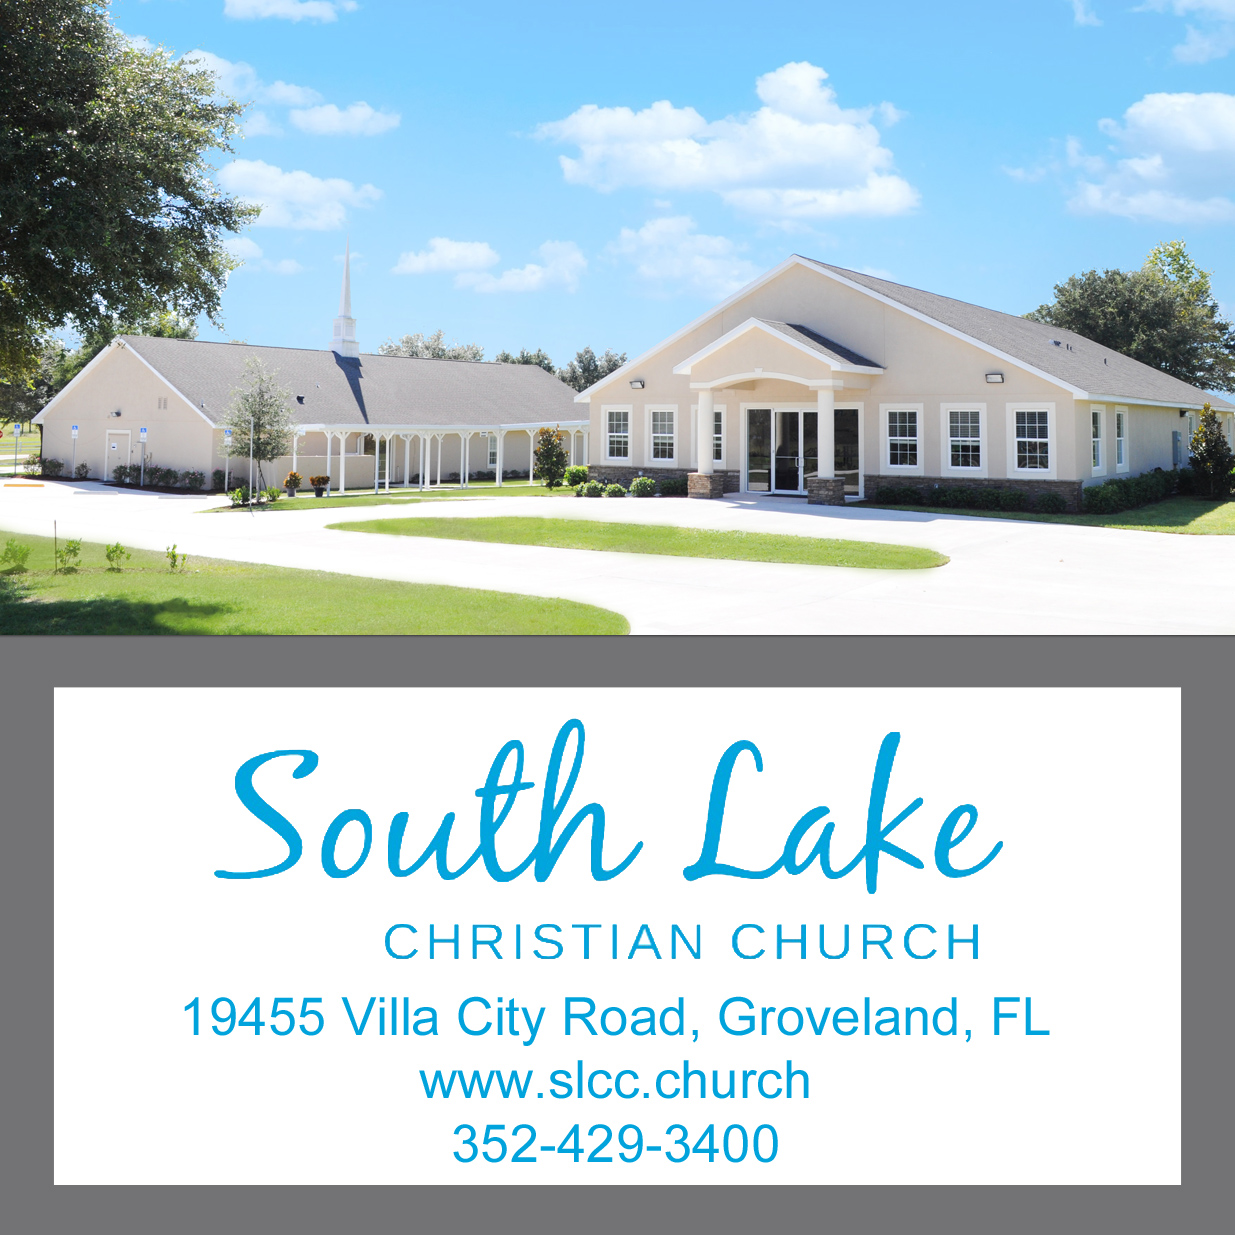 Christian churches directory: a selection of sites